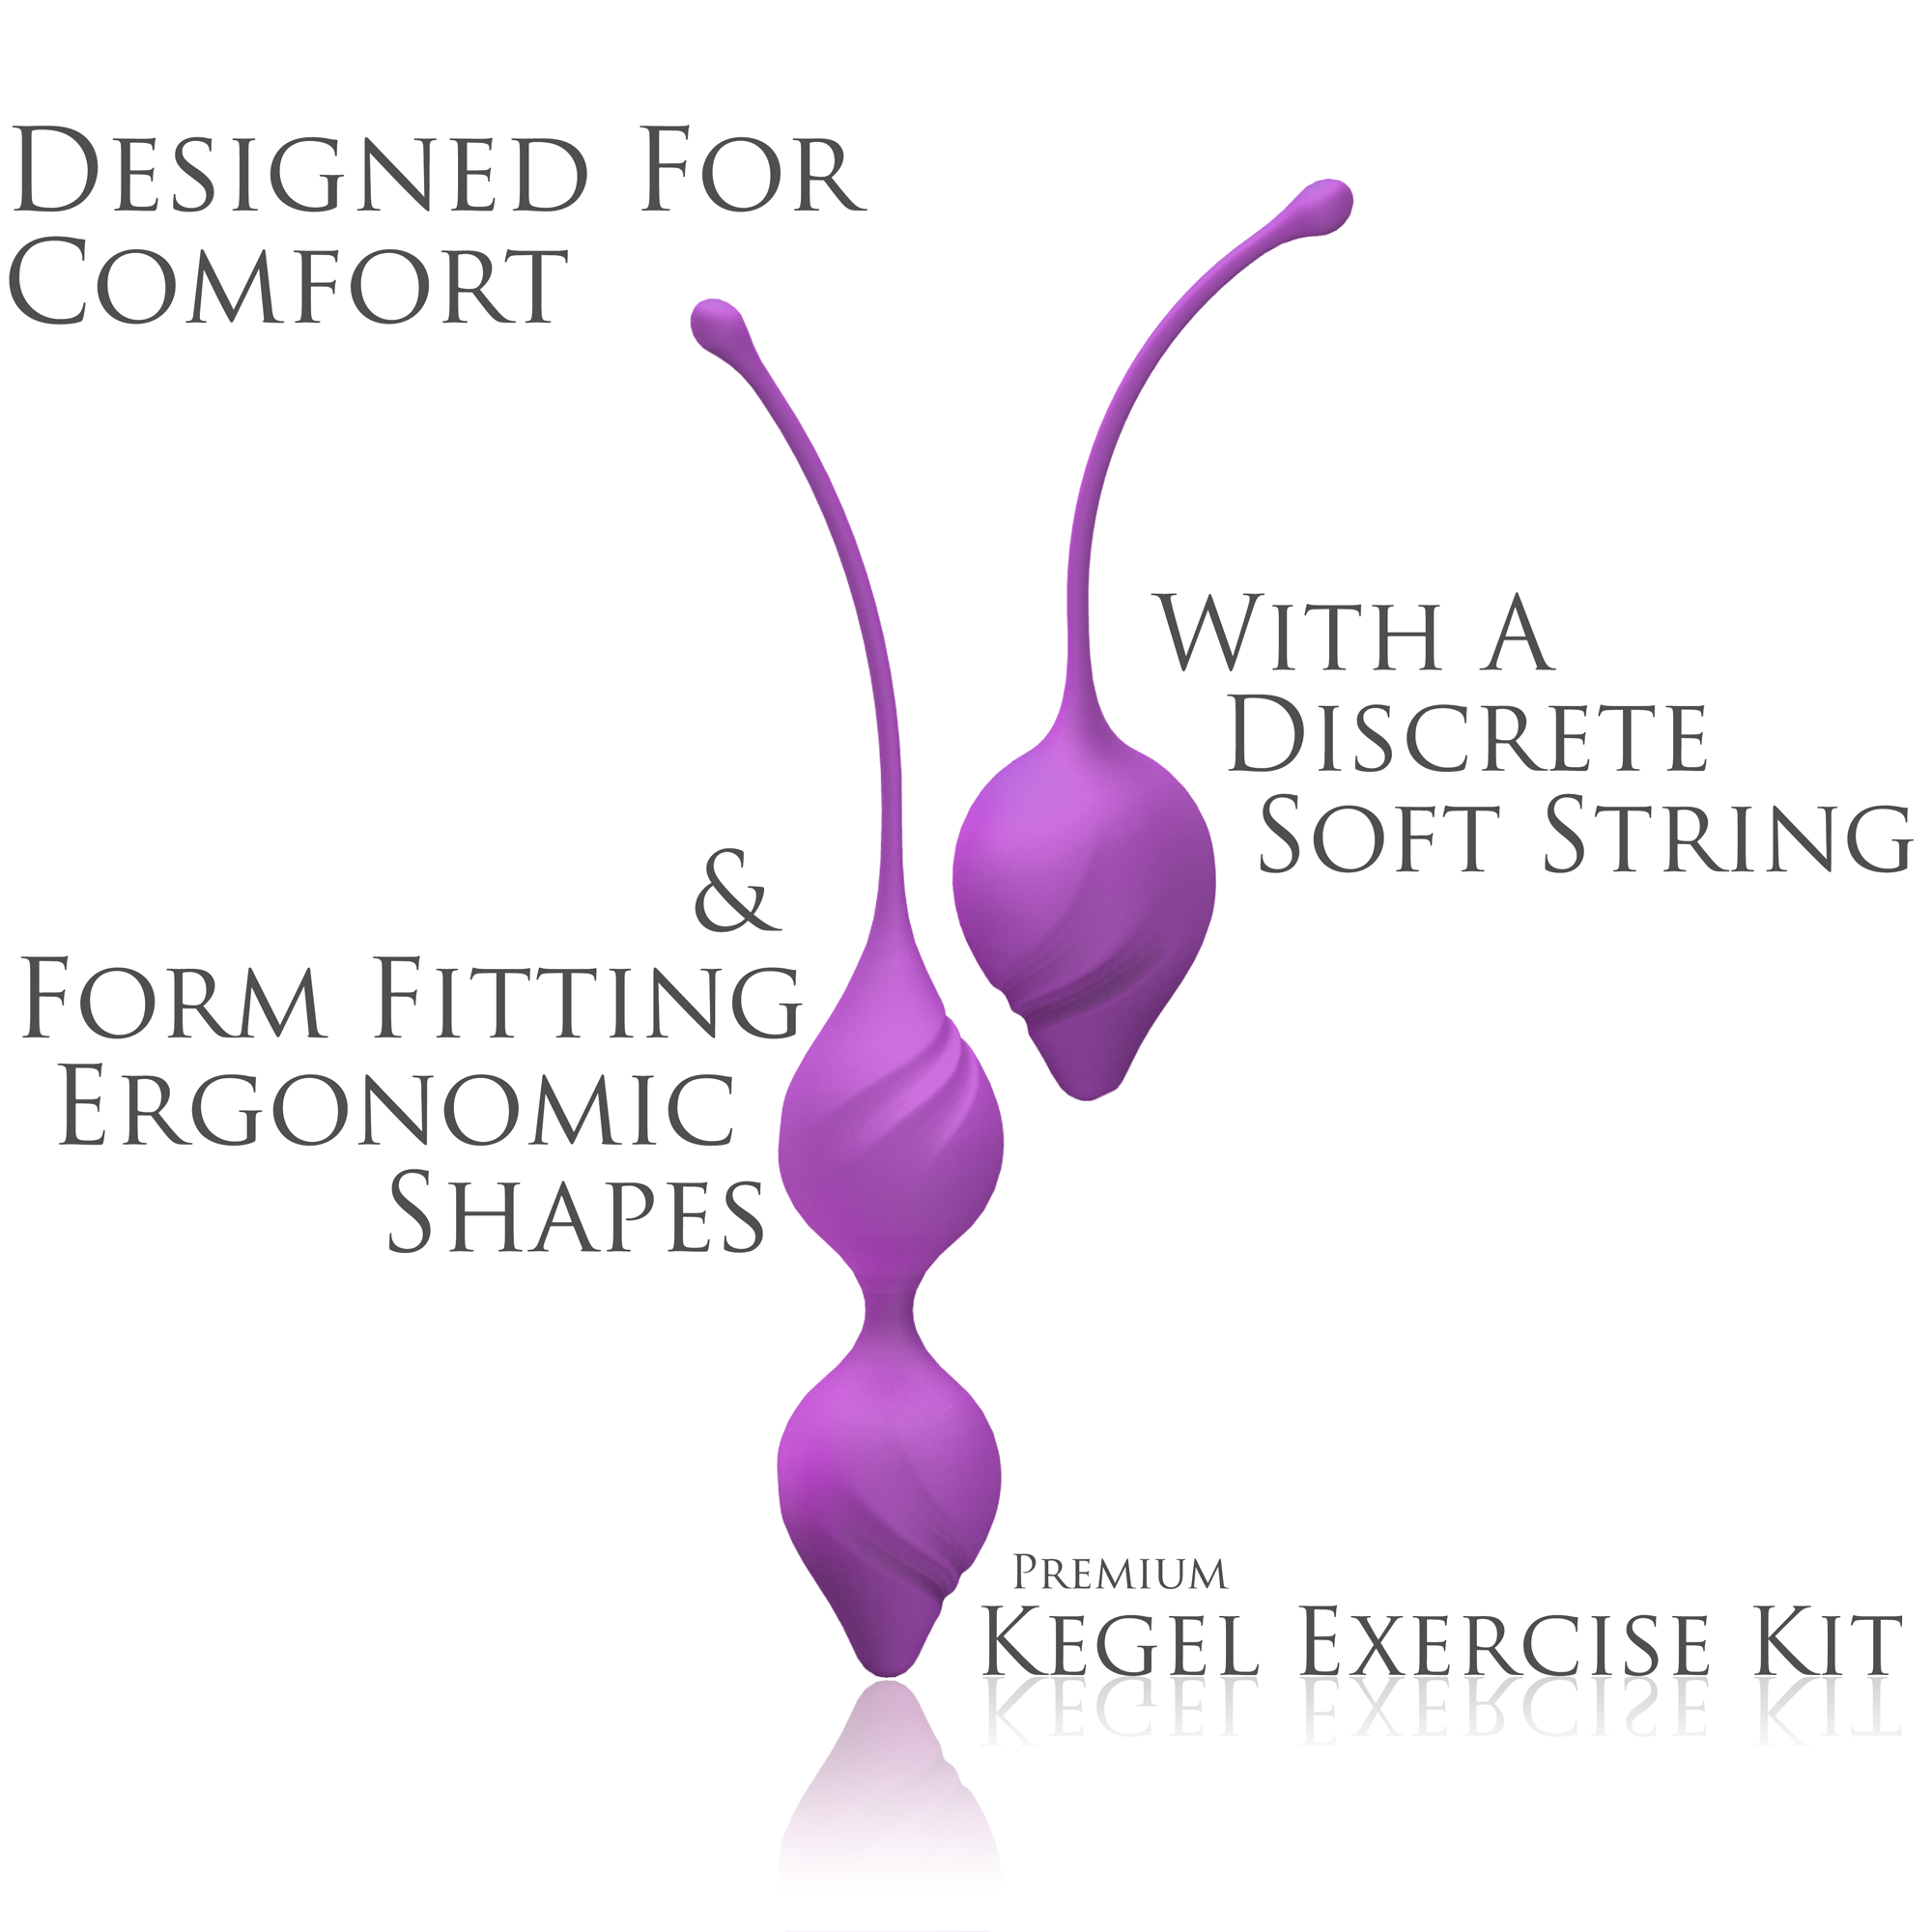 Inti Fit Premium Kegel Exercise Kit - Inti Fit Living Well